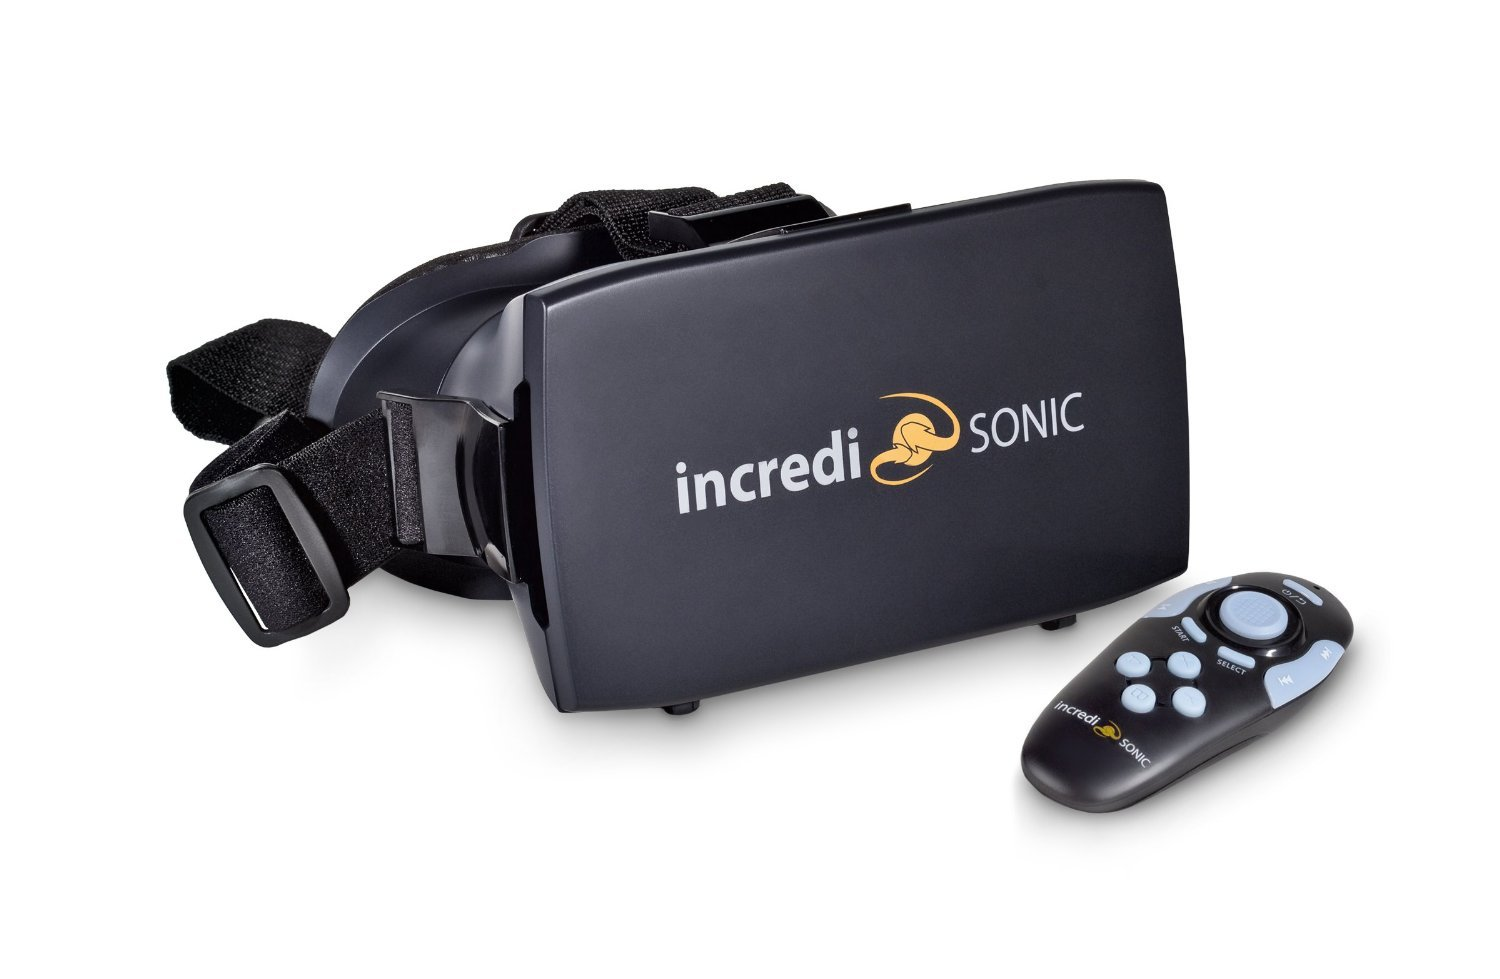 IncrediSonic VUE Series VR Glasses, Headset, & Bluetooth Gaming Controller (Black)